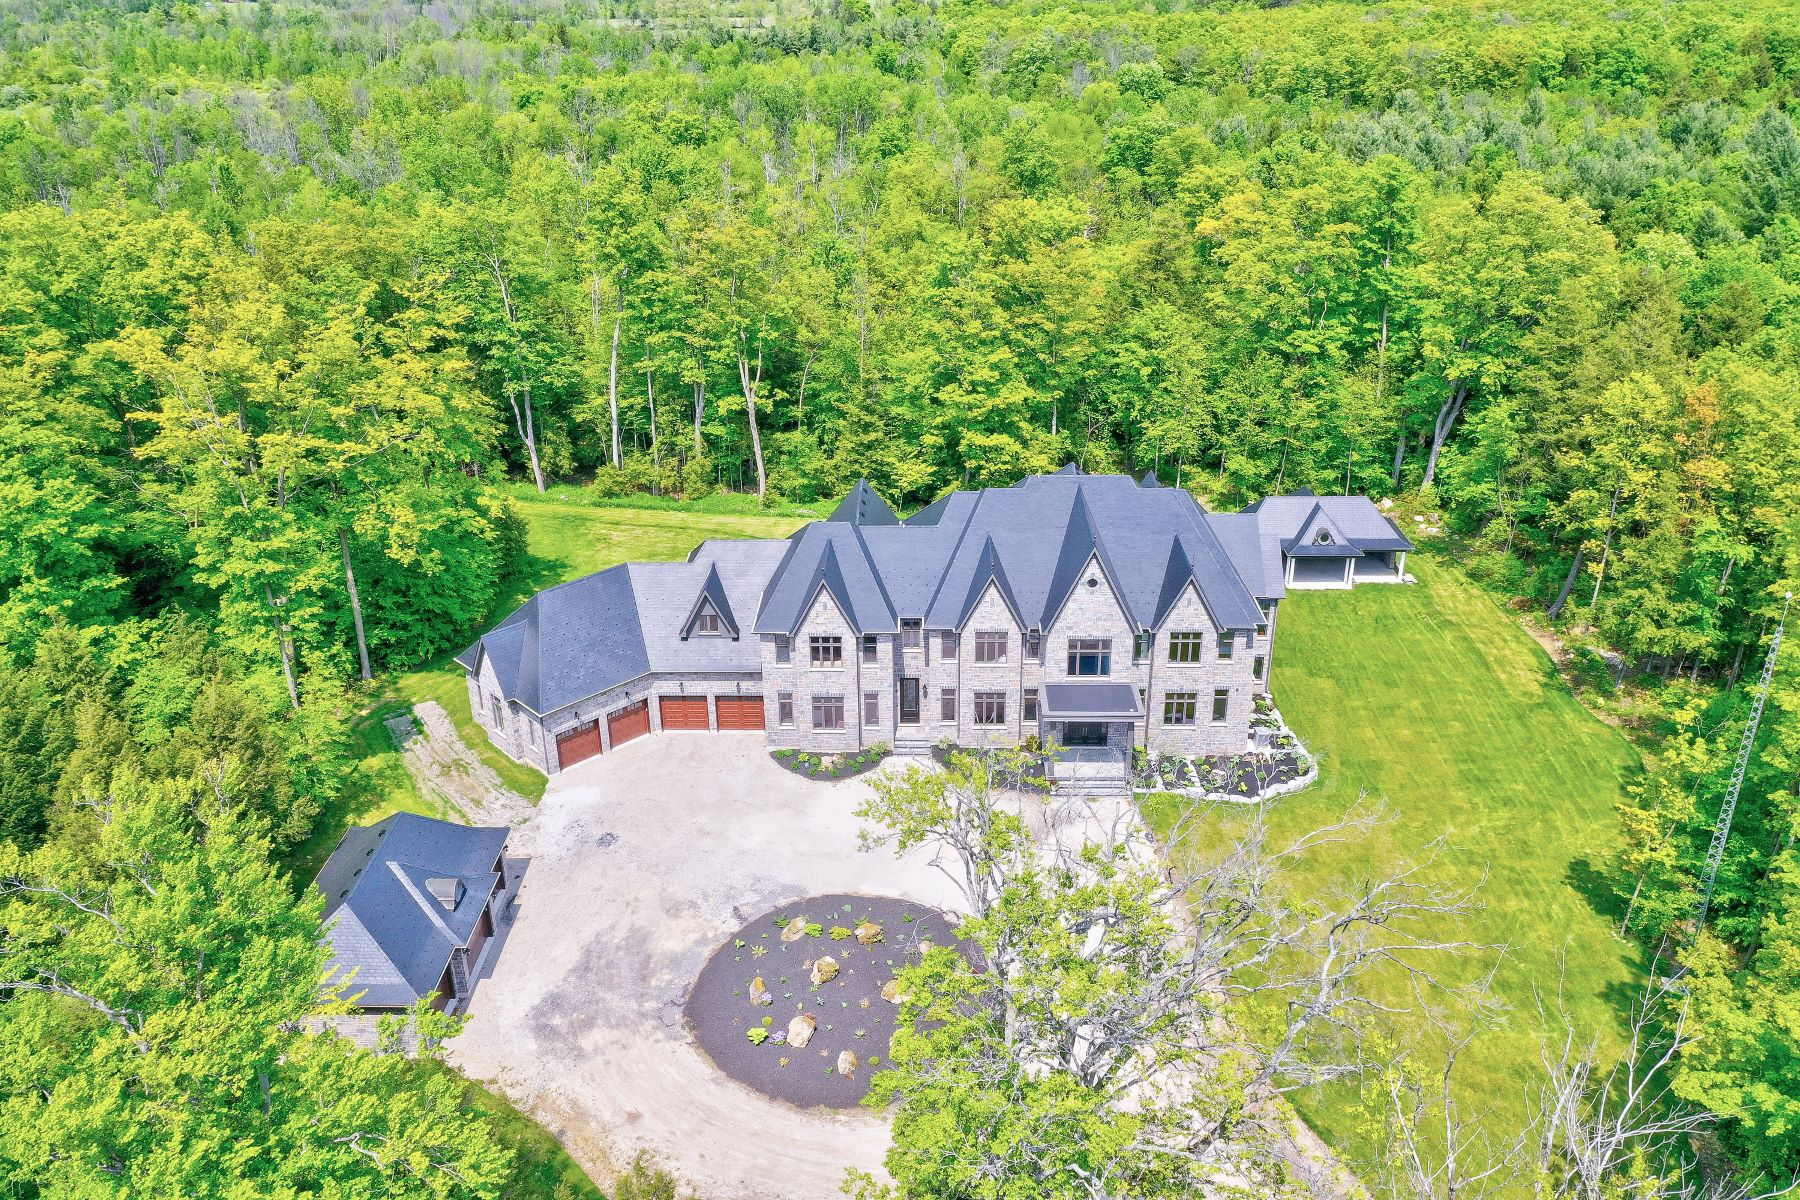 Single Family Homes for Sale at 25 Acre Custom Country Estate 10205 First Line Nassagaweya Milton, Ontario L0P1J0 Canada